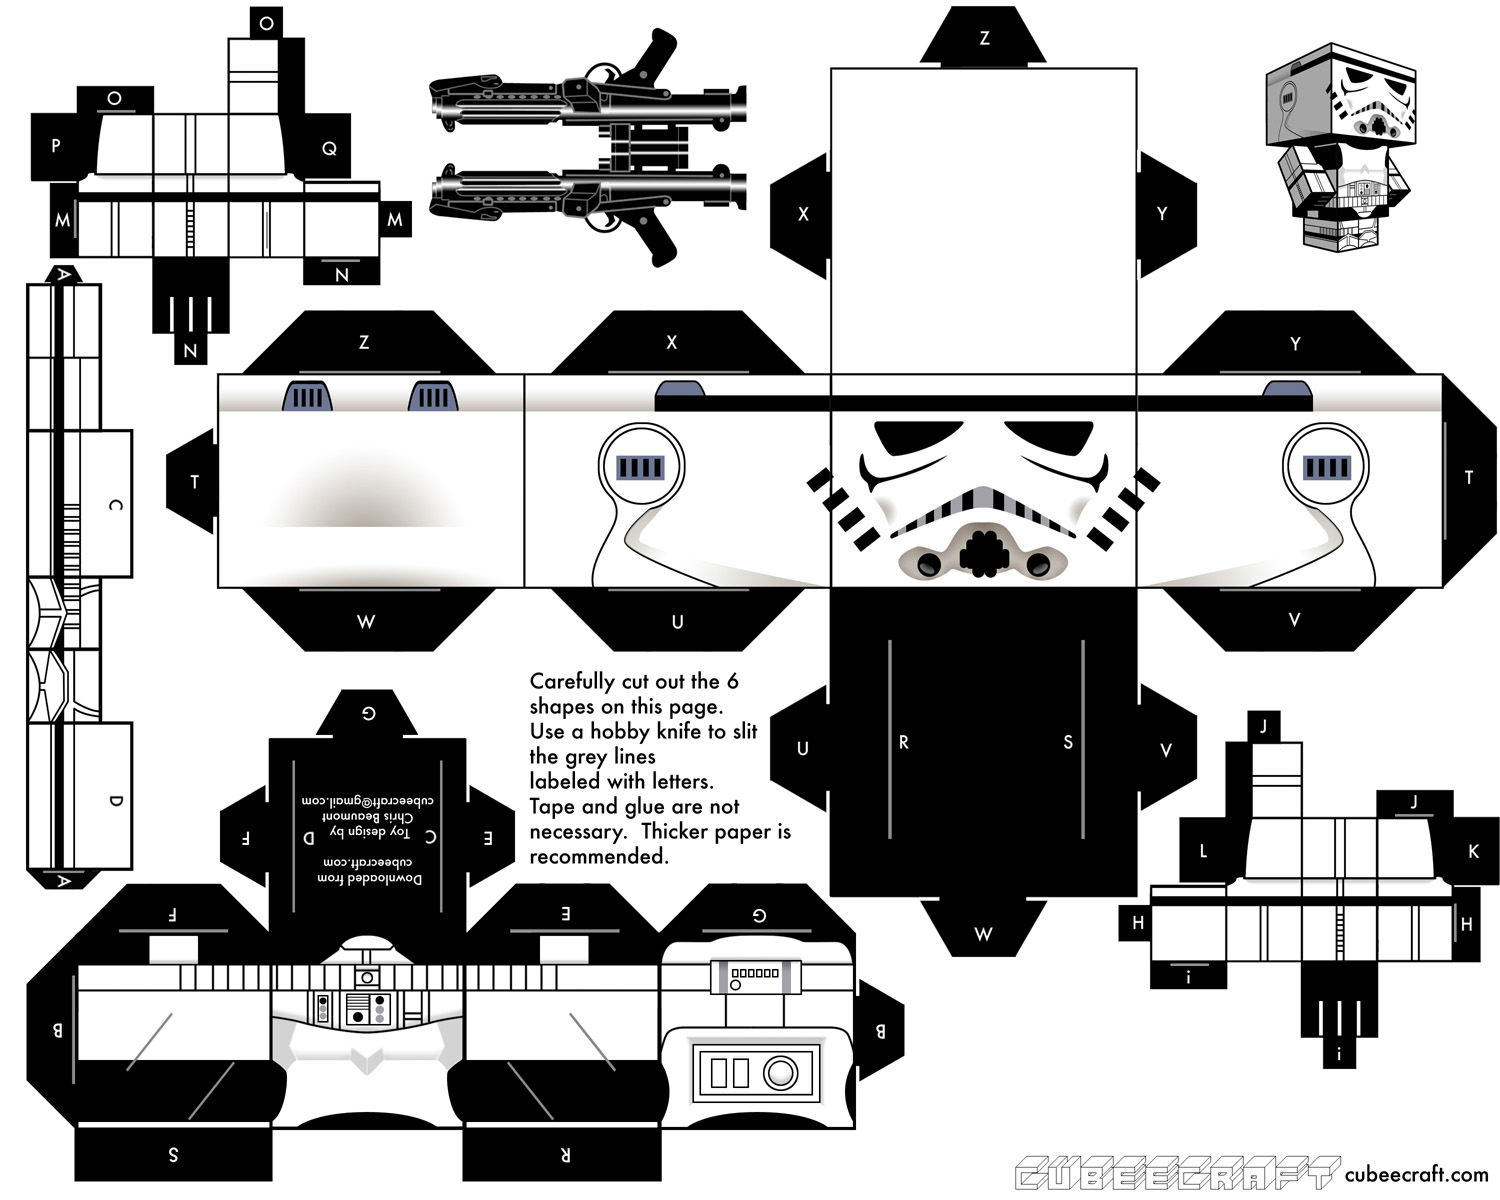 build your own cubecraft stormtrooper star wars the gamer with kids. Black Bedroom Furniture Sets. Home Design Ideas